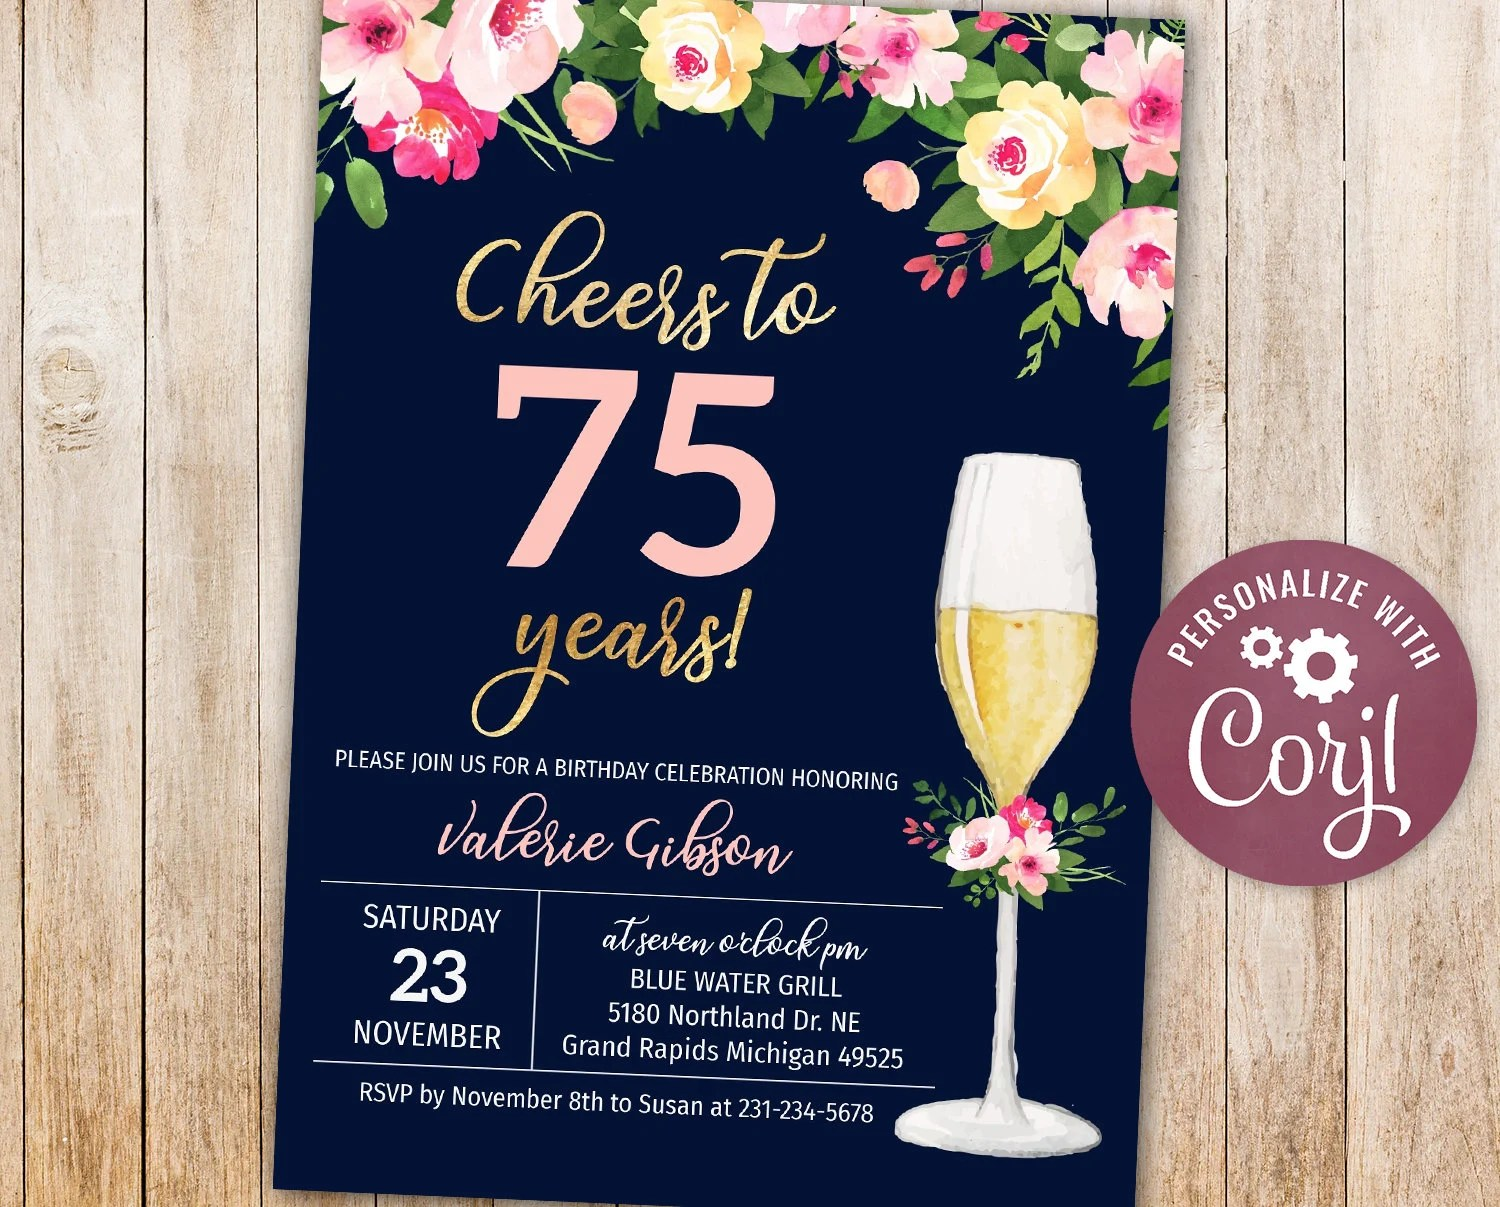 75th birthday invitations cheers to 75 years birthday party invite floral digital instant download 5x7 editable adult woman womens